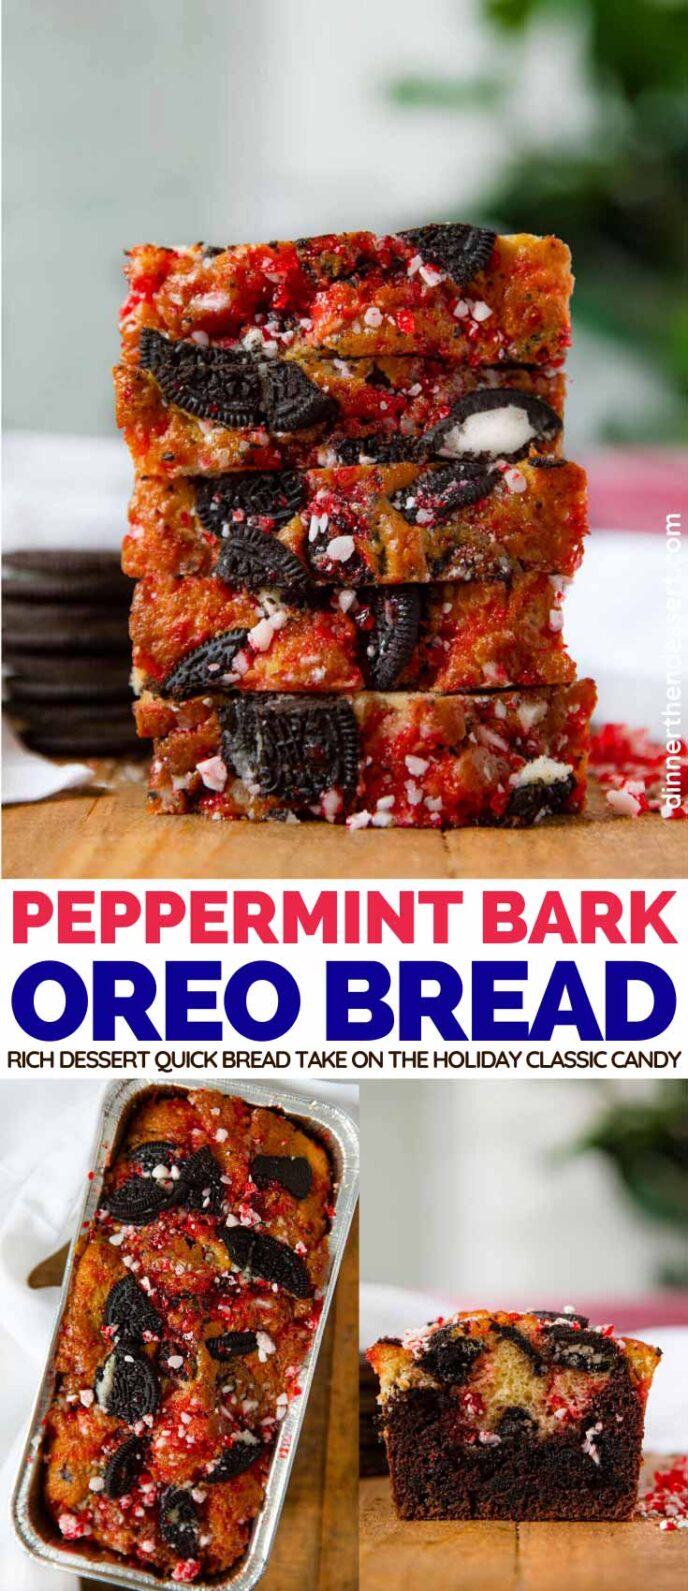 Peppermint Bark Oreo Bread collage